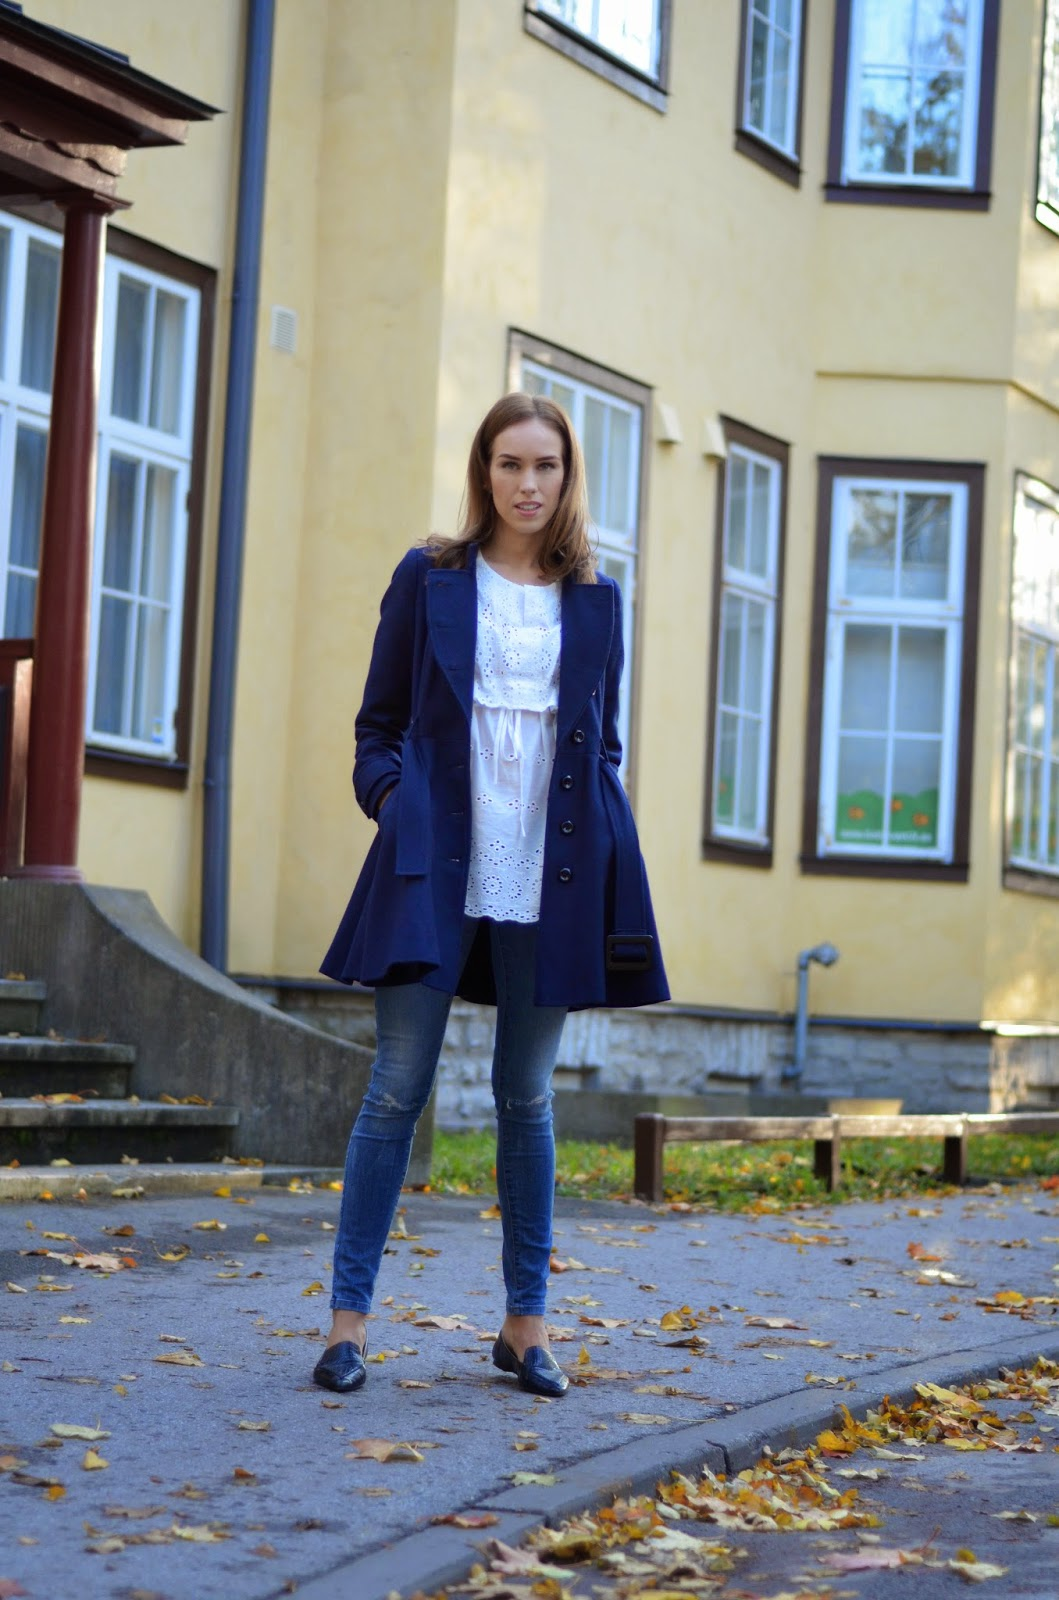 fall-outfit-wool-coat-white-top-jeans-flats